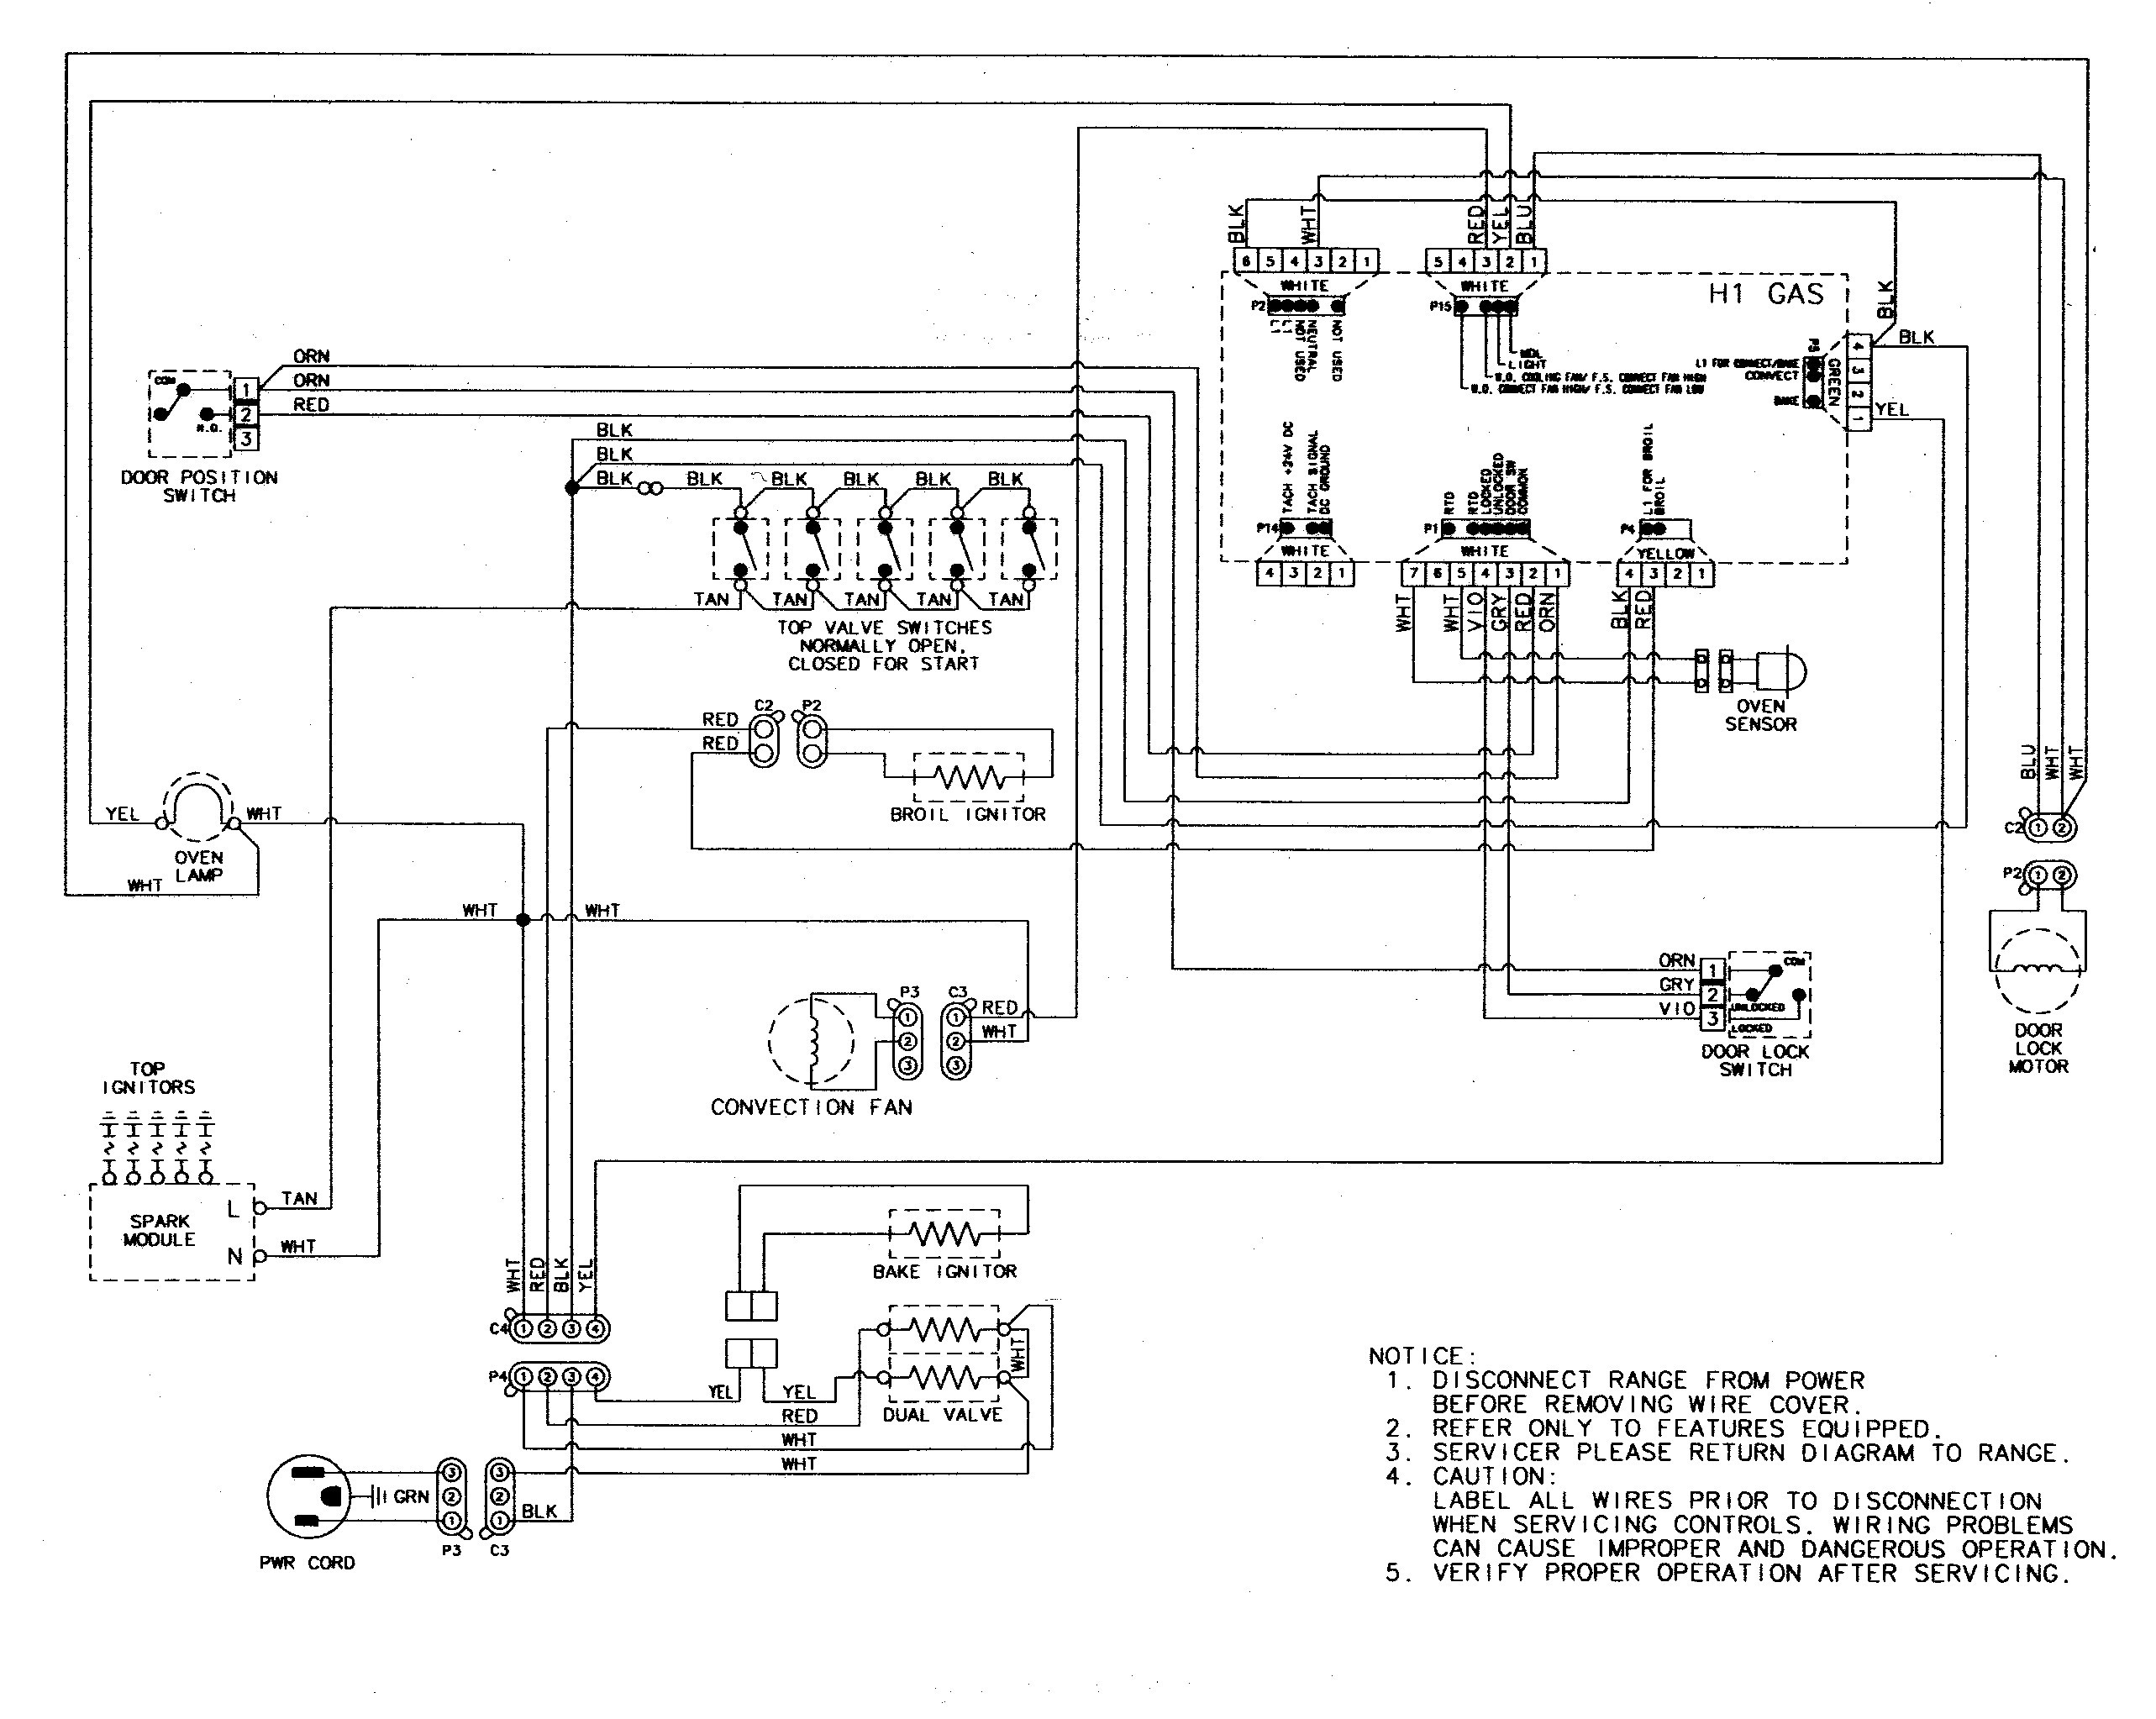 hotpoint dryer timer wiring diagram sample. Black Bedroom Furniture Sets. Home Design Ideas